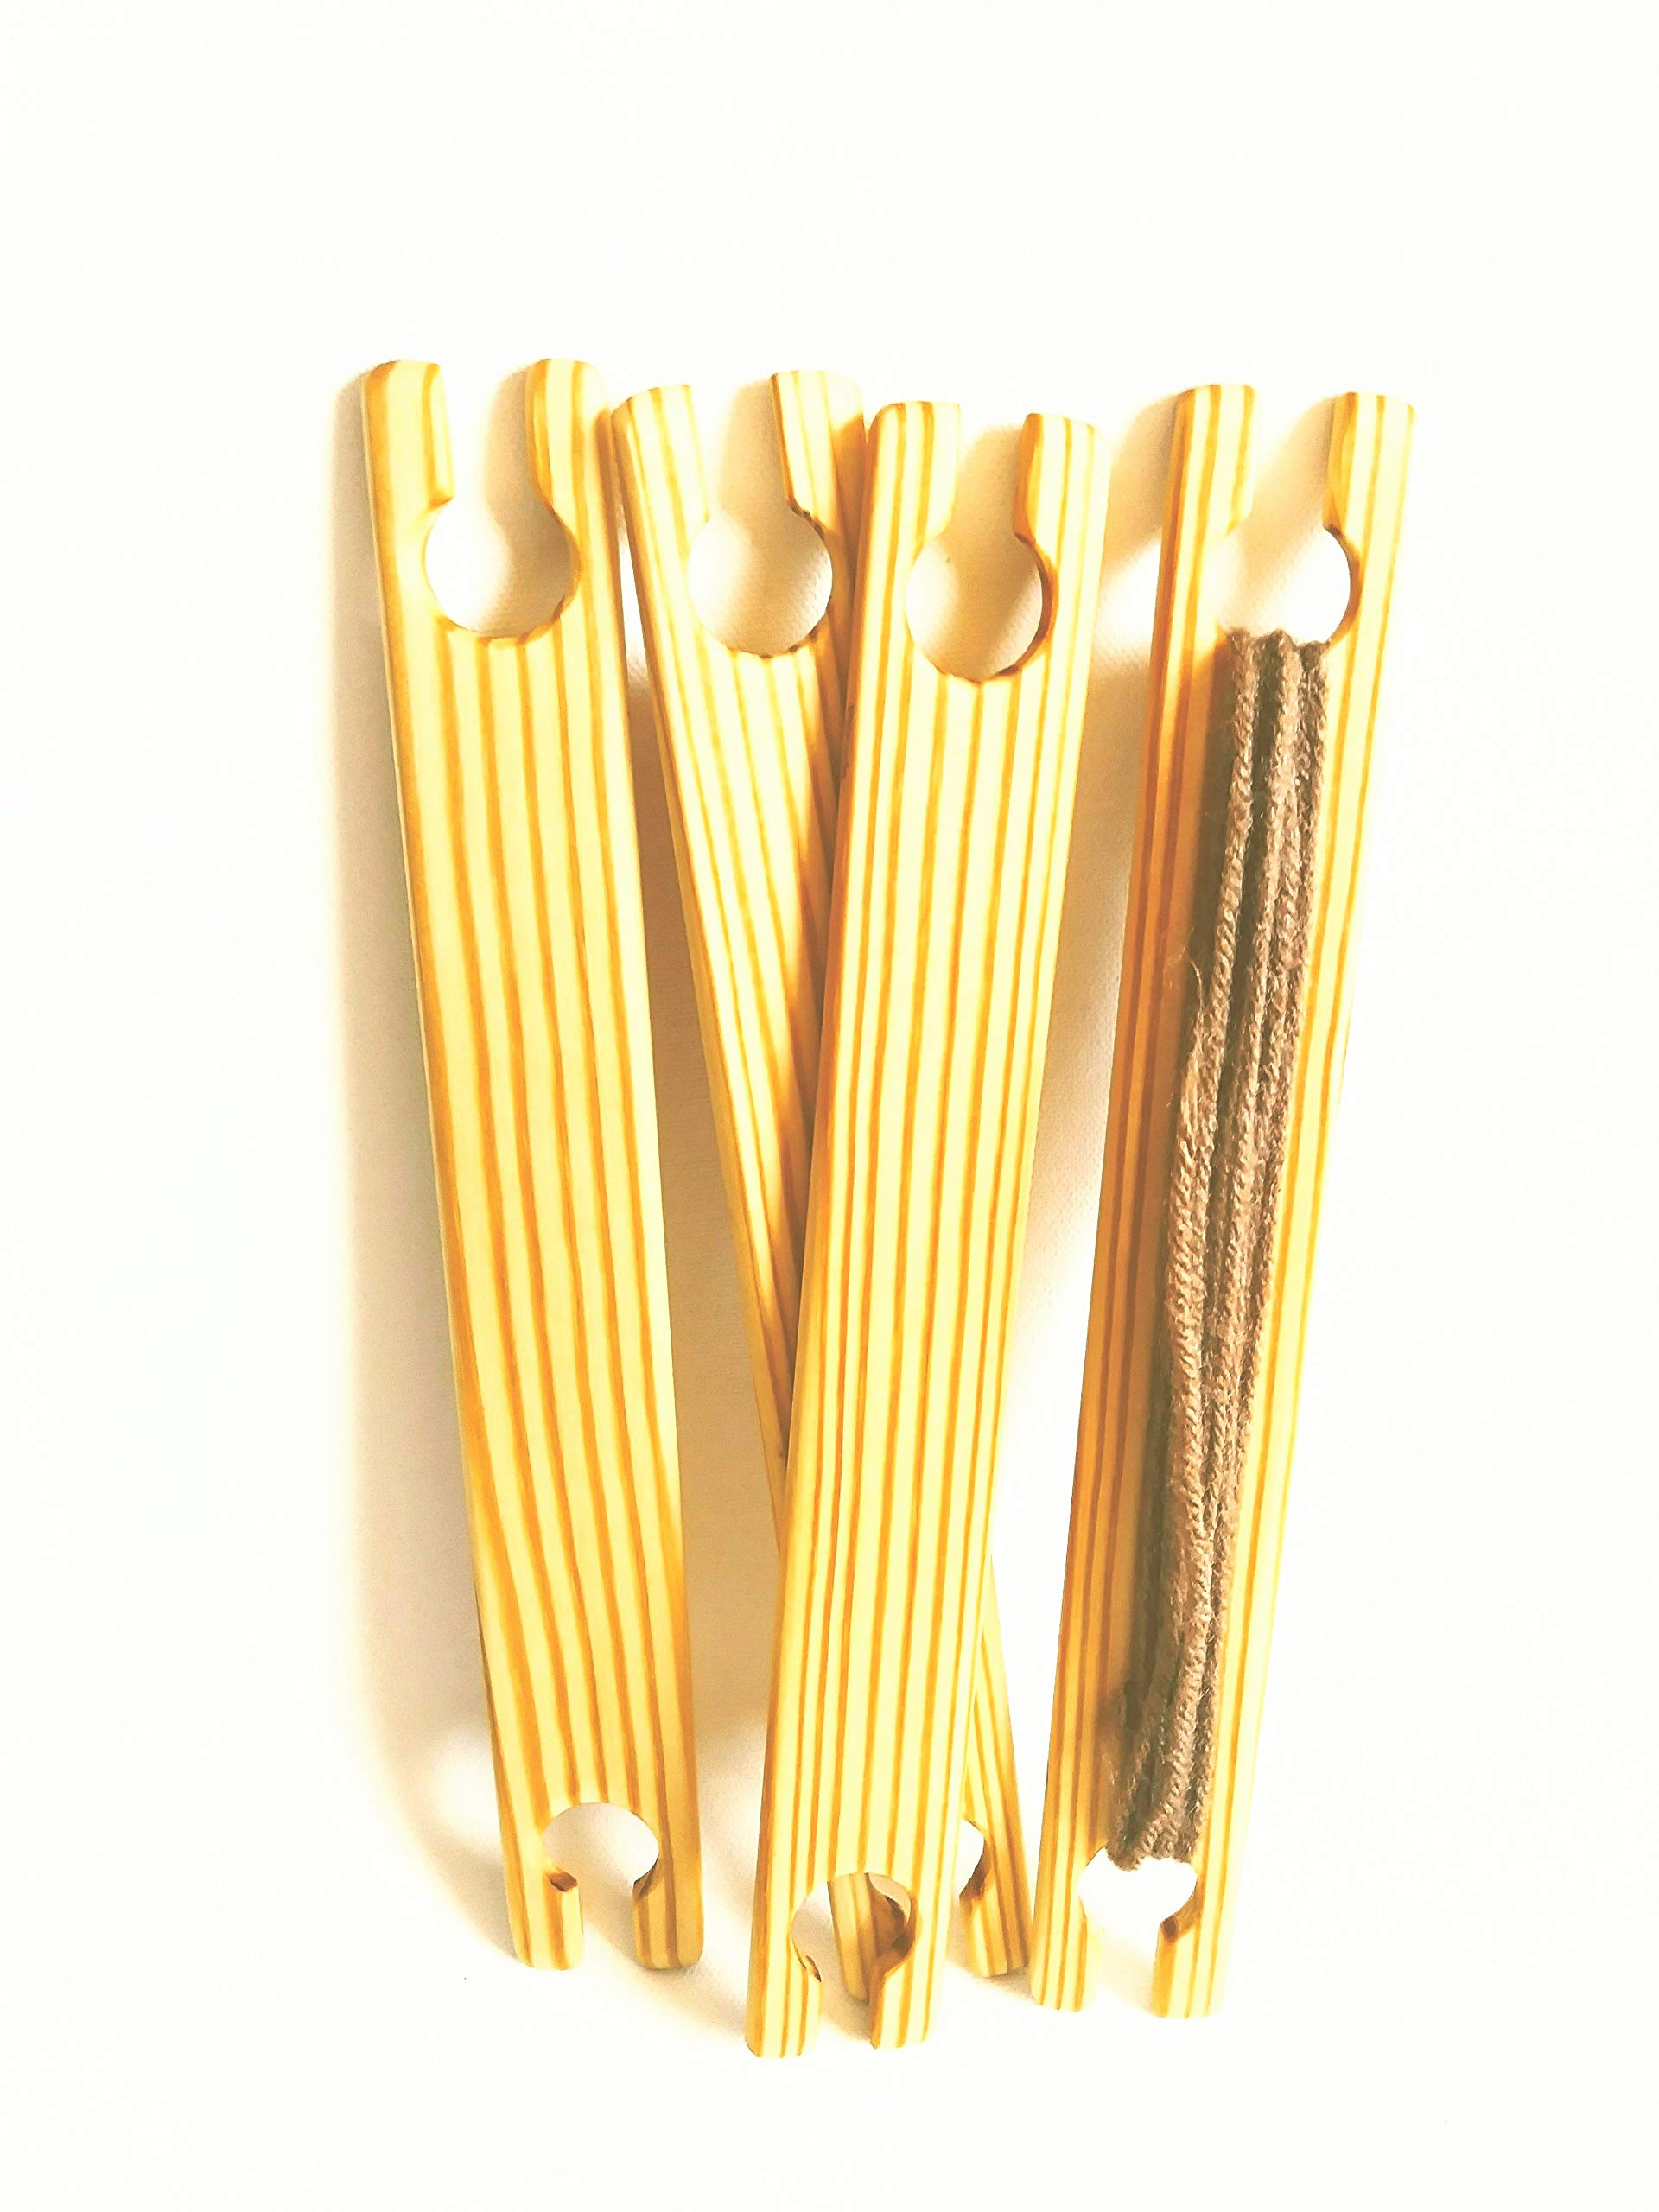 4 Pack 24 inch x 1.5 inch wide weaving stick shuttles